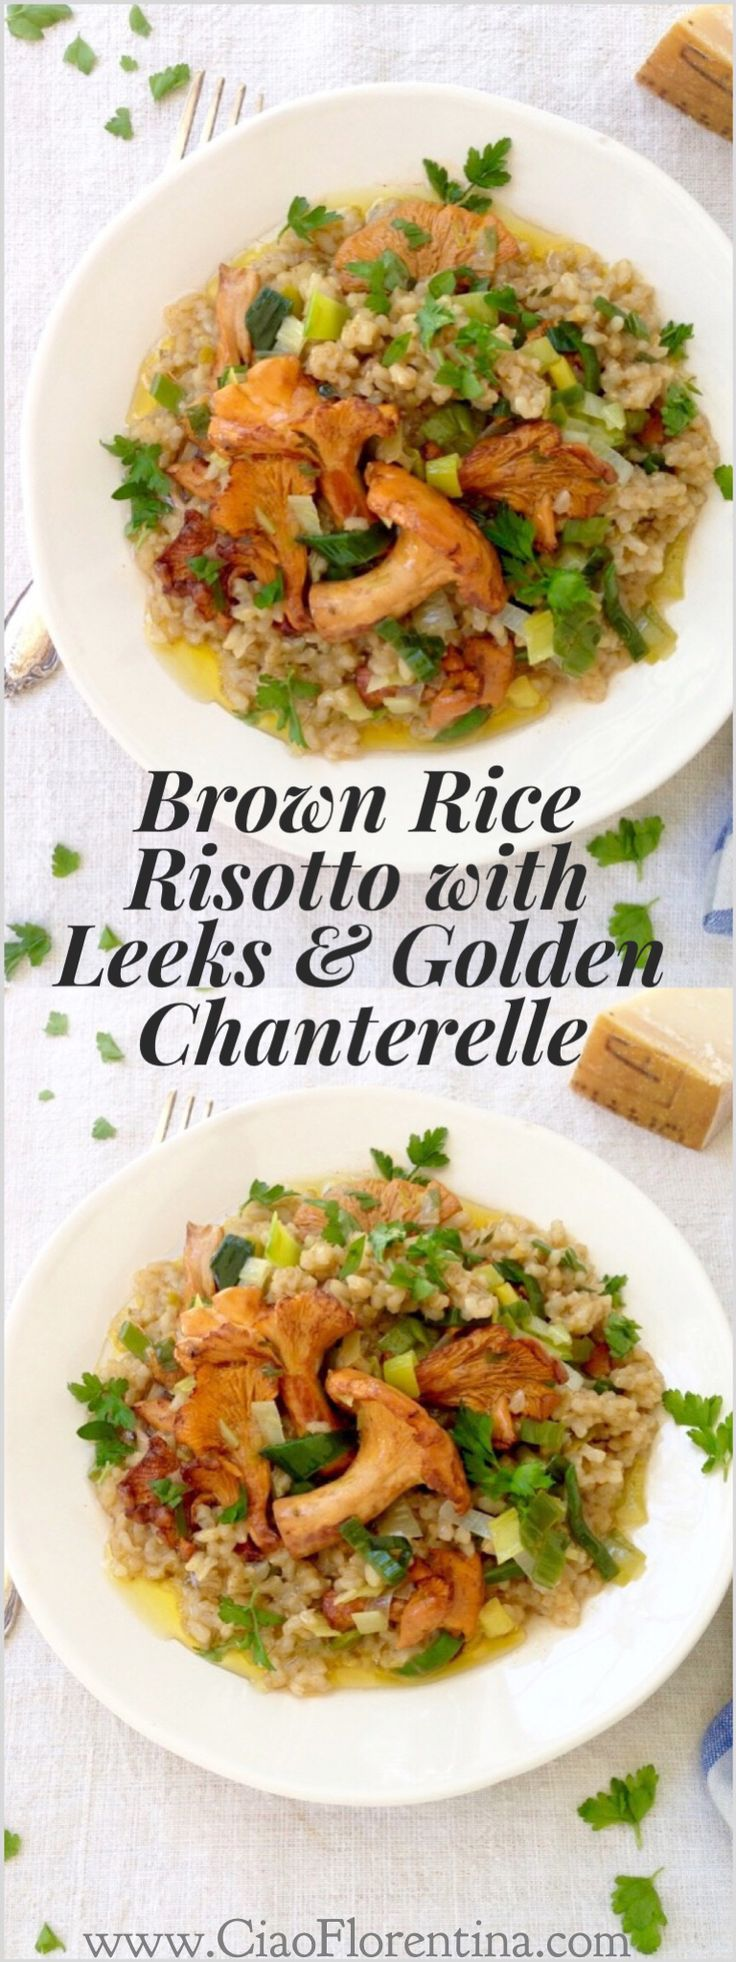 Brown Rice Risotto Recipe with Leeks and Golden Chanterelle Mushrooms ...